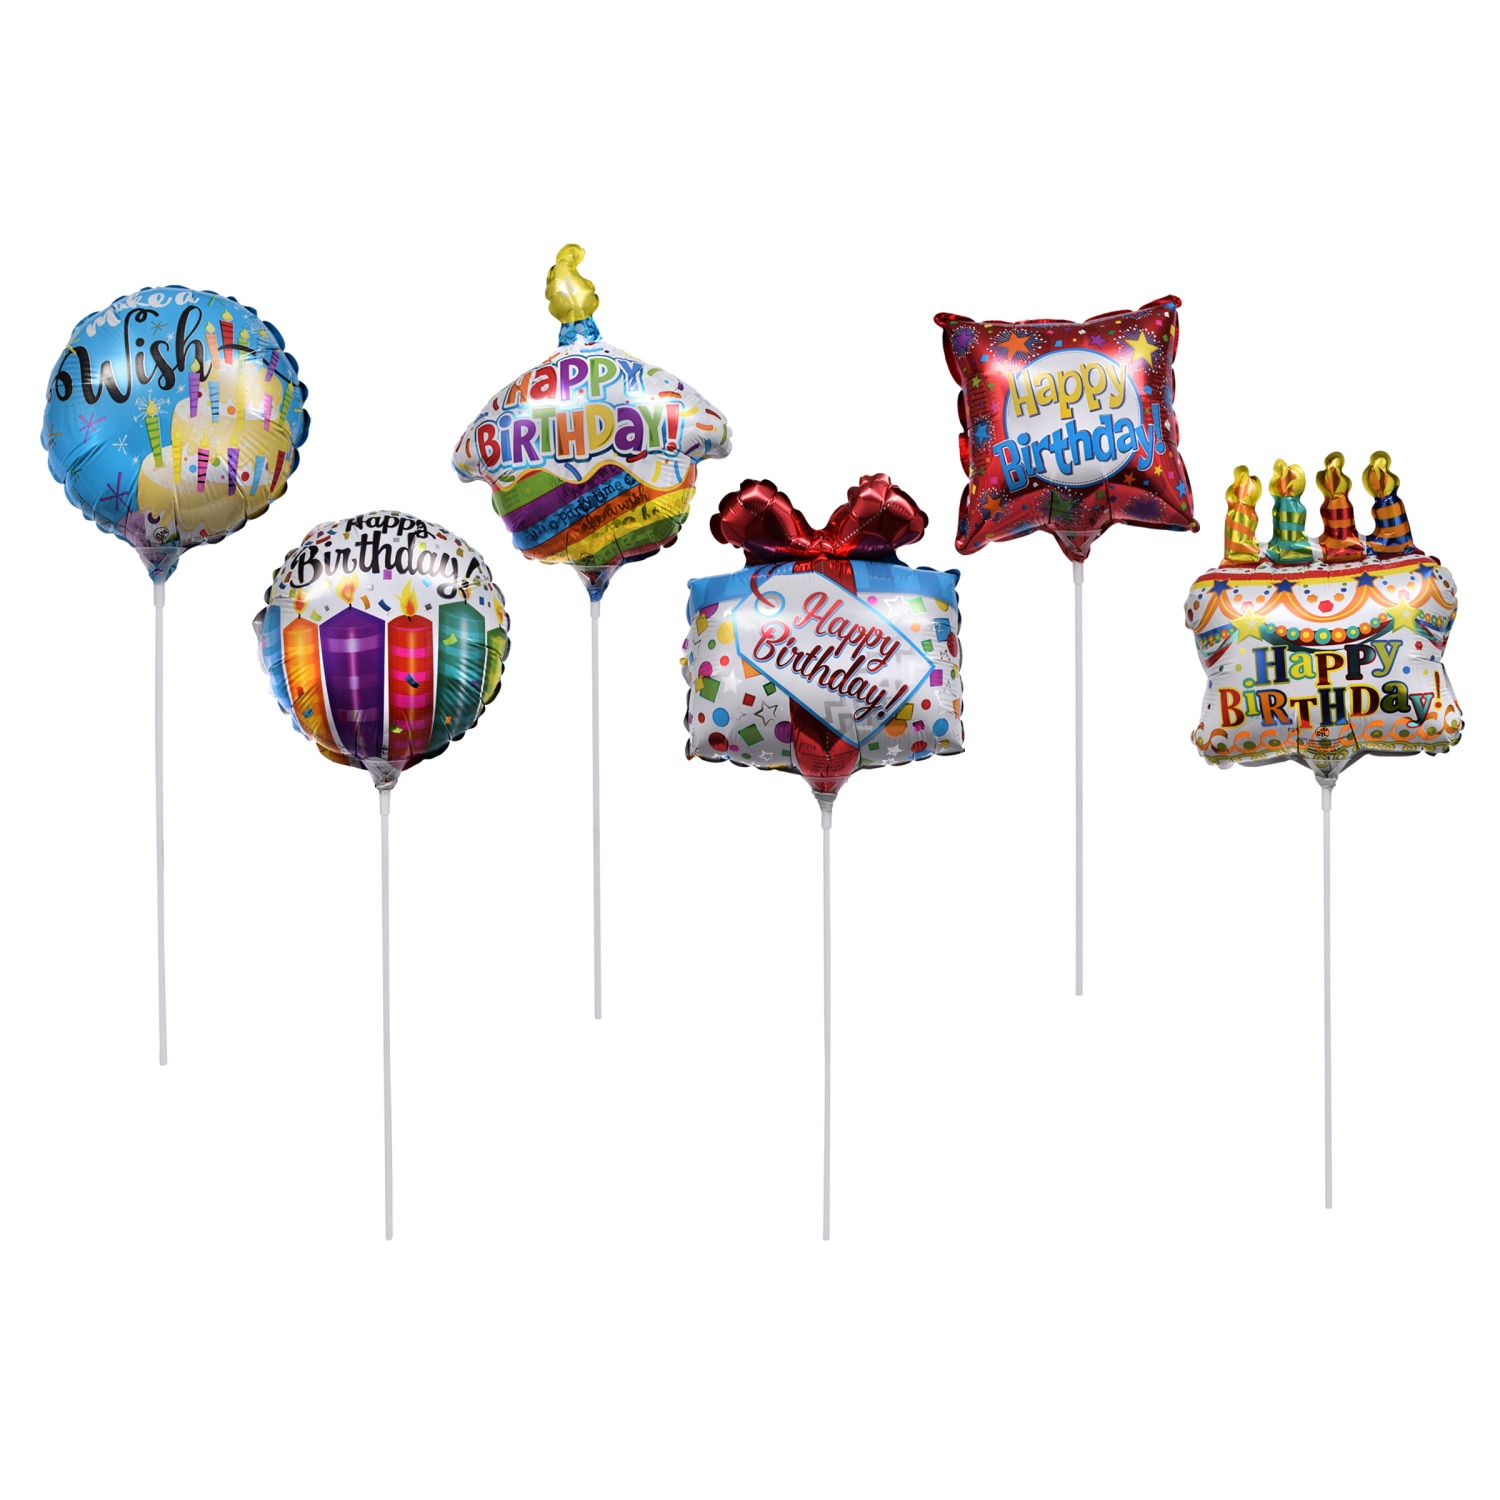 Dollartreecom Bulk Balloons Accessories